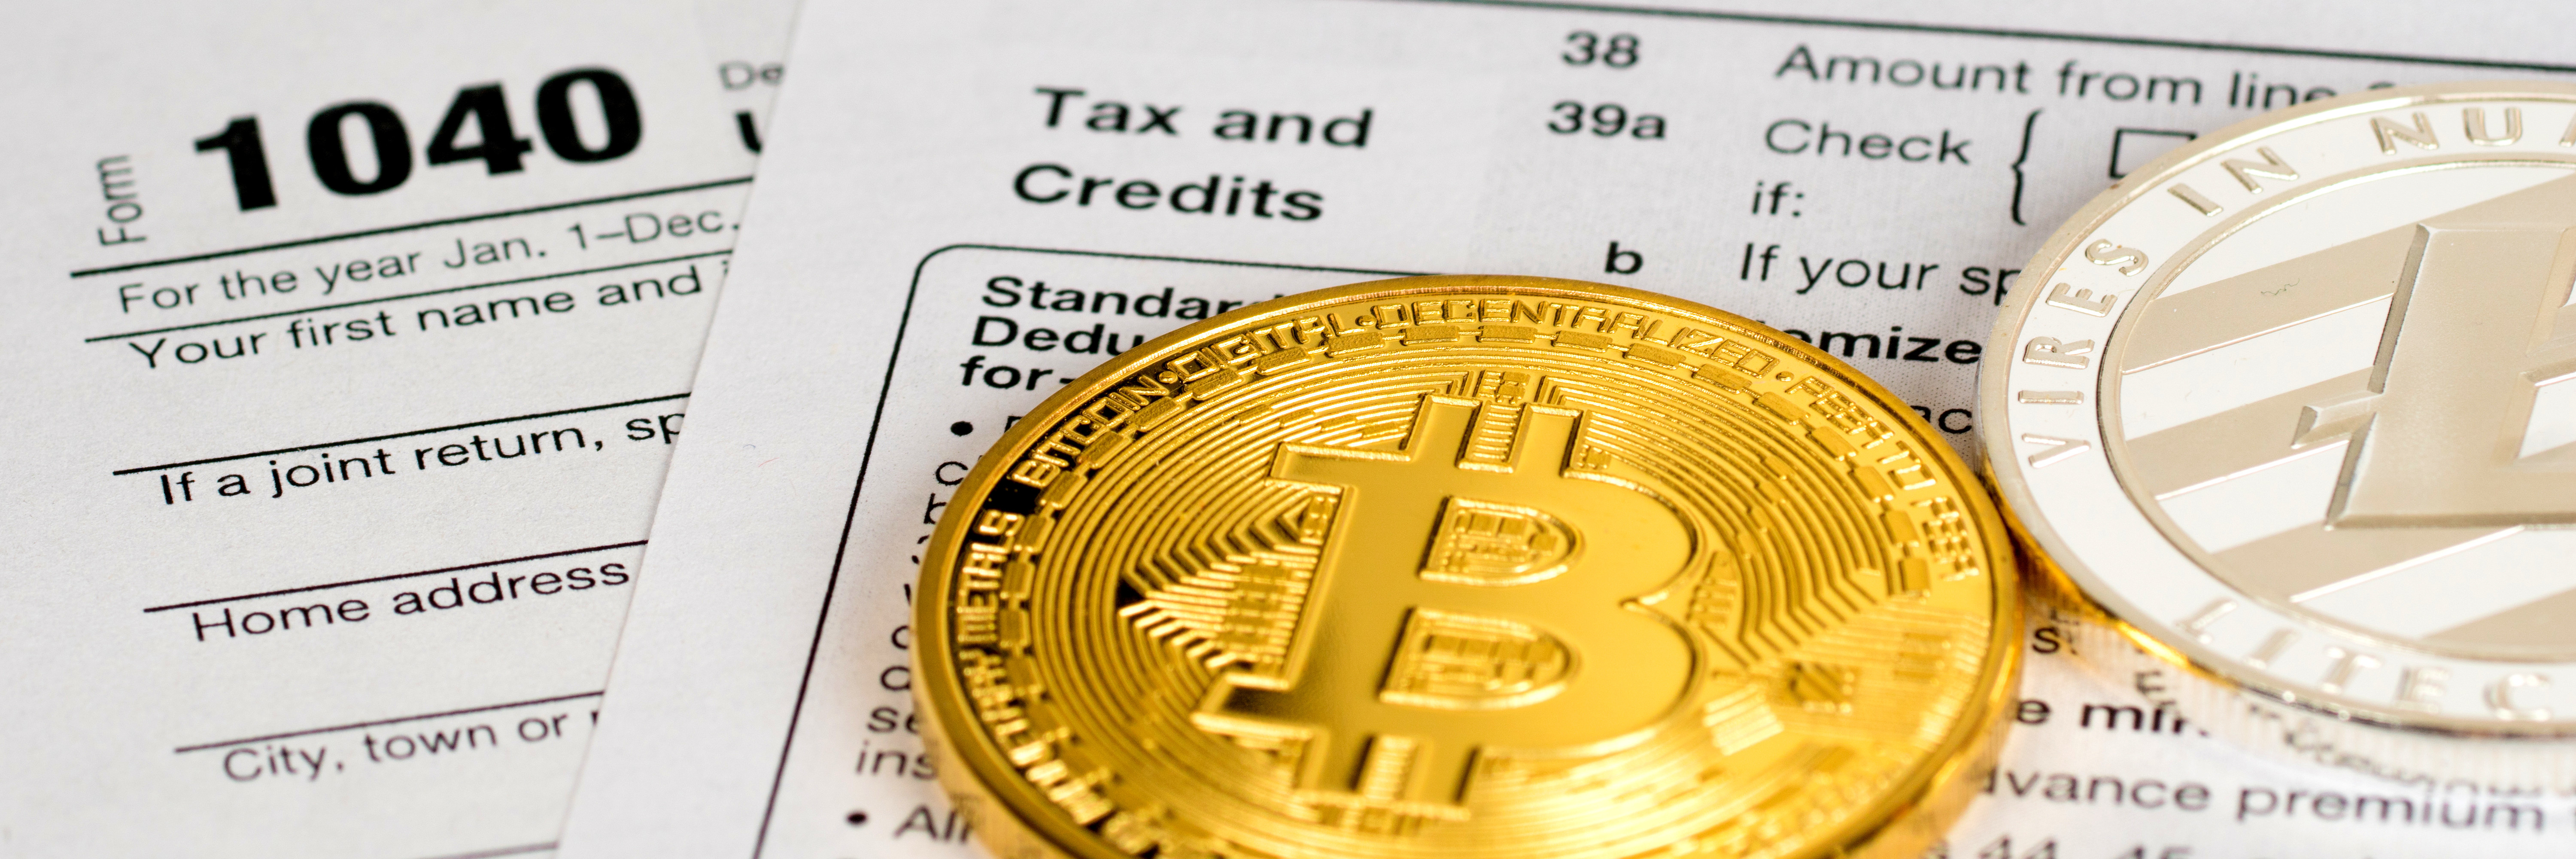 Crypto Question Placement on New Tax Return 'Signals IRS Action'